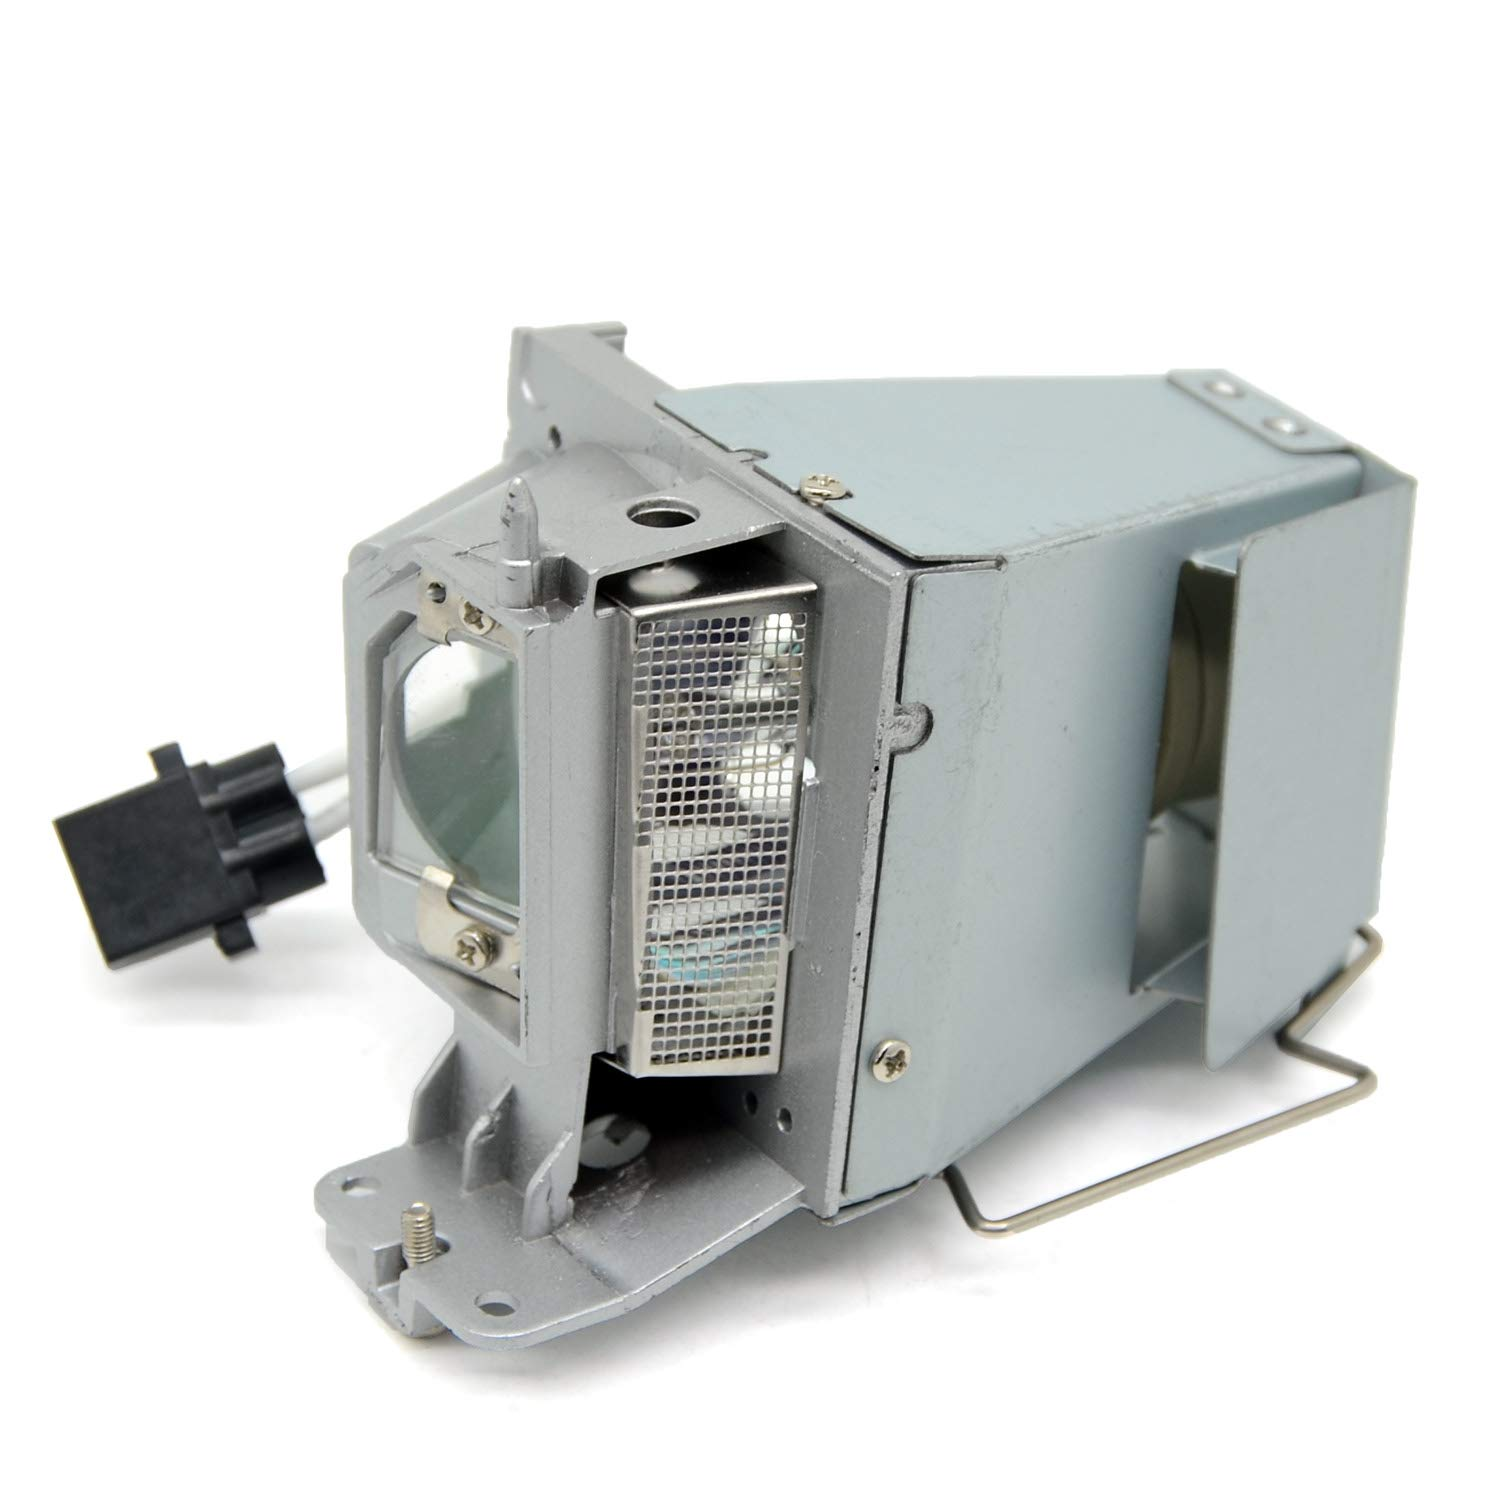 Litance BL-FP190E/ SP.8VH01GC01 Replacement Lamp for Optoma HD141X, HD26, GT1080, W316, BR323, BR326, DH1009, DW333, DX346, EH200ST, S312, S316, X316 Projectors by Litance (Image #2)